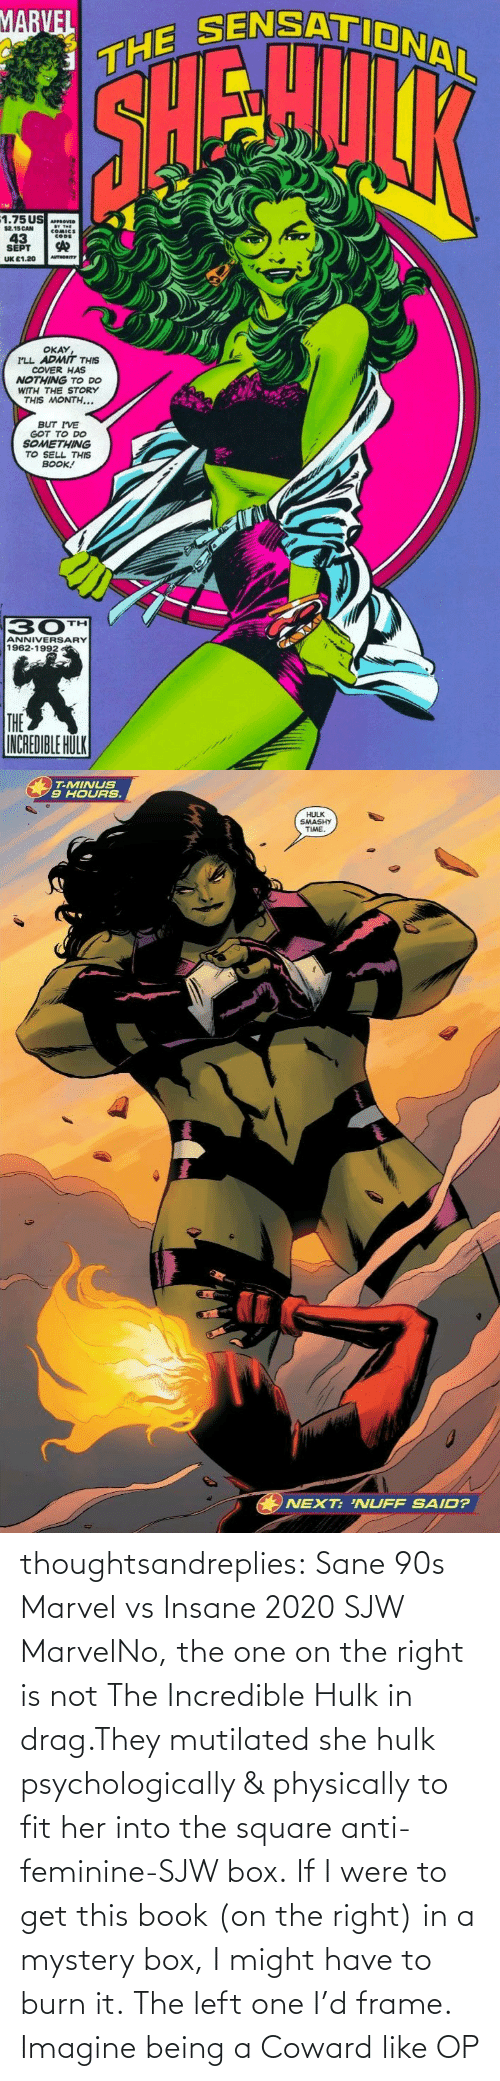 box: thoughtsandreplies:  Sane 90s Marvel vs Insane 2020 SJW MarvelNo, the one on the right is not The Incredible Hulk in drag.They mutilated she hulk psychologically & physically to fit her into the square anti-feminine-SJW box. If I were to get this book (on the right) in a mystery box, I might have to burn it. The left one I'd frame.    Imagine being a Coward like OP